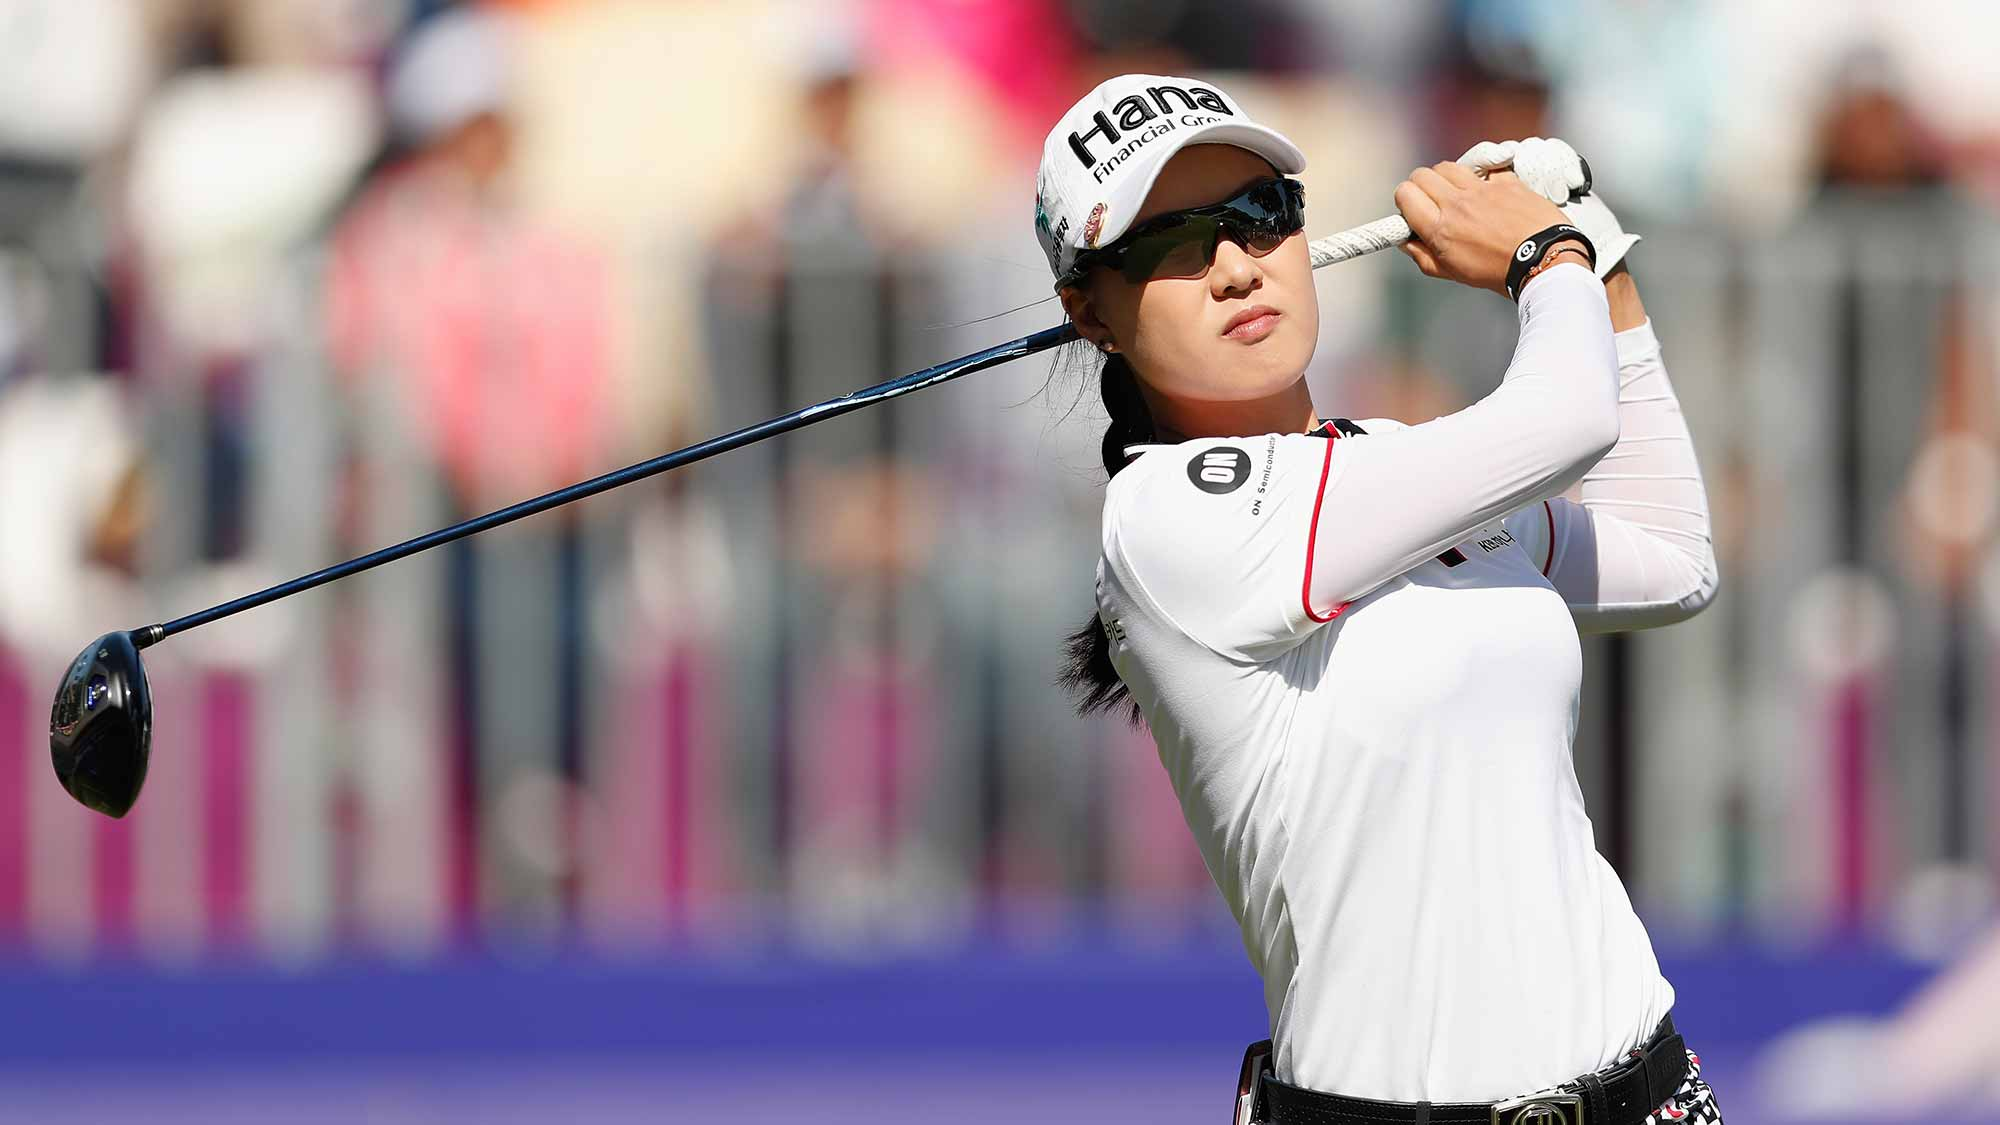 Minjee Lee of Australia tees off at the first hole during the final round of the Swinging Skirts LPGA Taiwan Championship at Ta Shee Golf & Country Club on October 28, 2018 in Taoyuan, Chinese Taipei